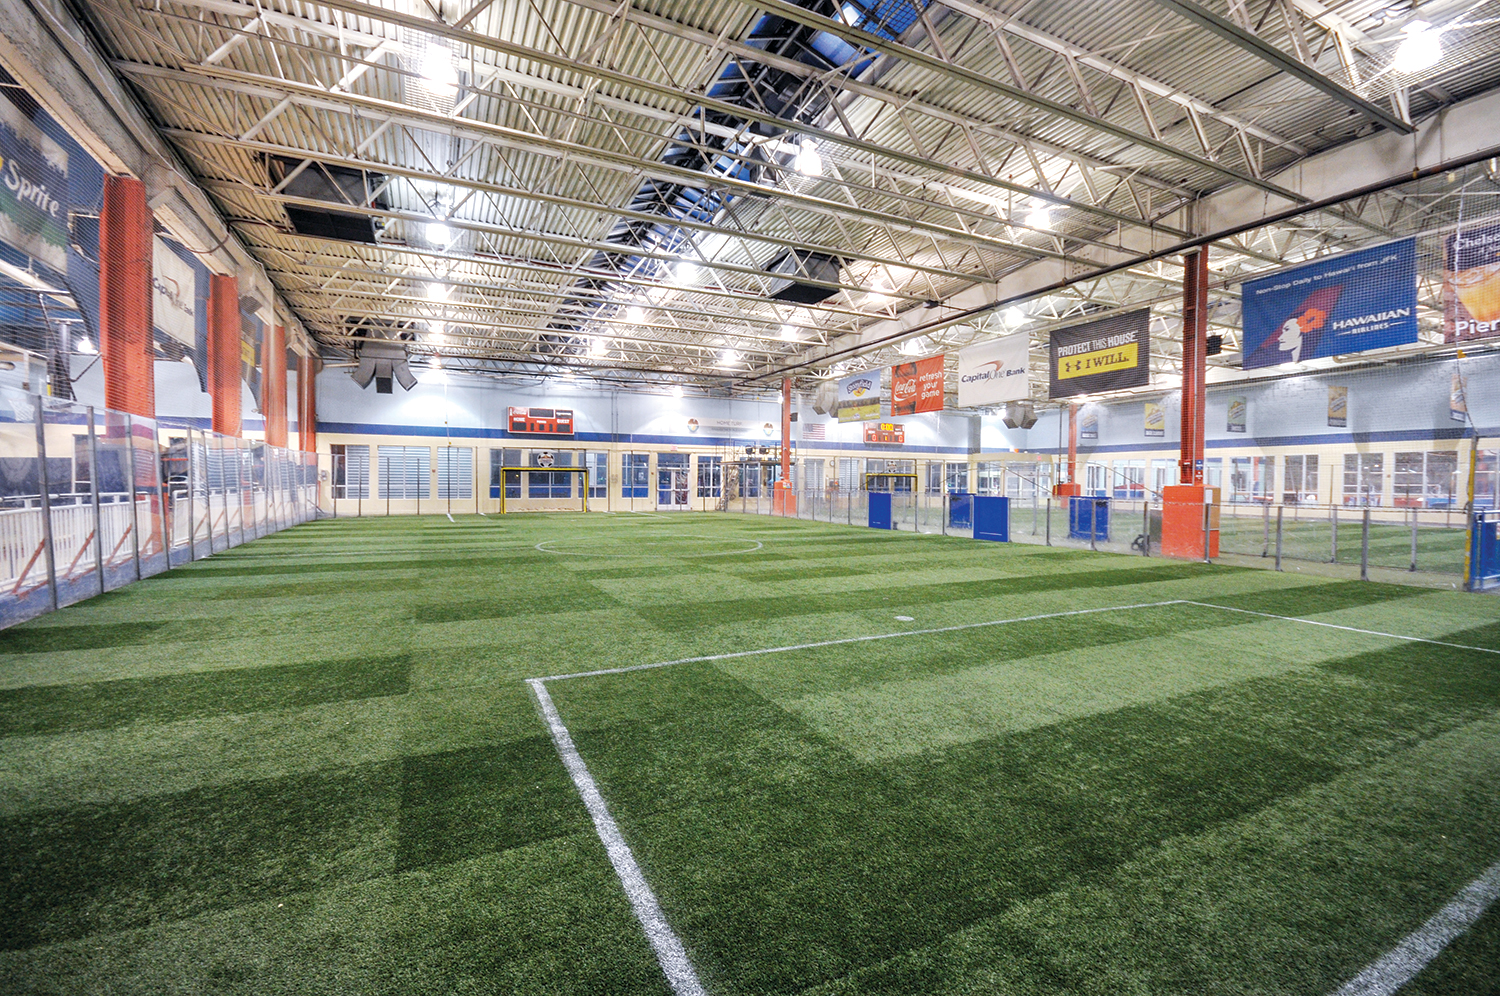 Field House Chelsea Piers Nyc